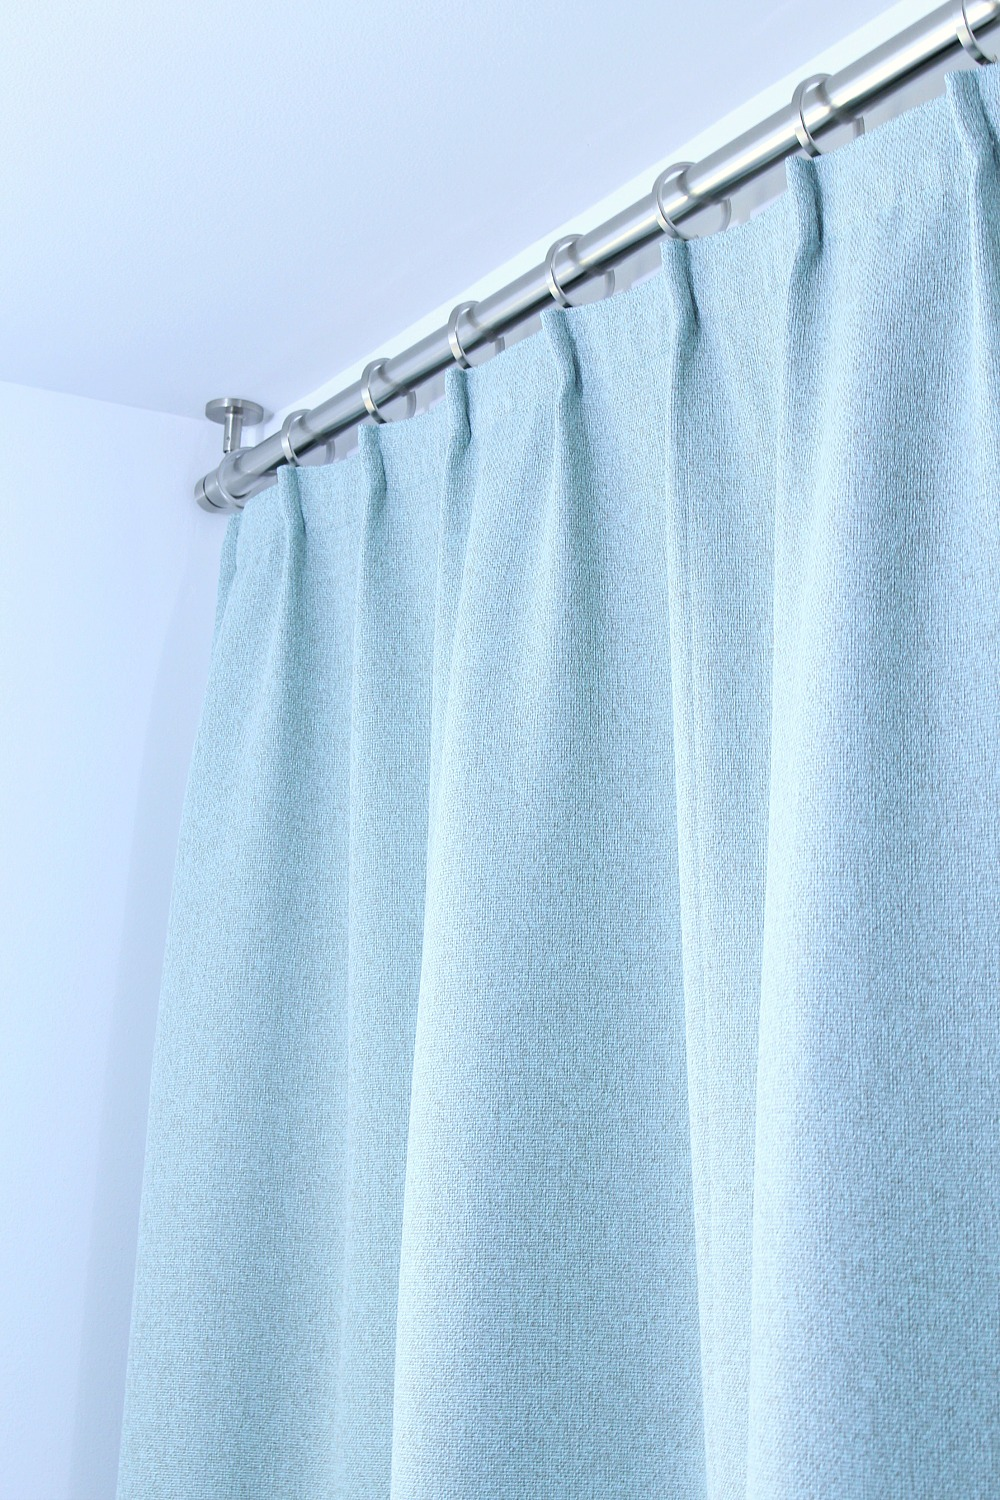 Incroyable Ceiling Mounted Shower Curtain Rod + Turquoise Shower Curtain In Modern  Bathroom Reno | Www.